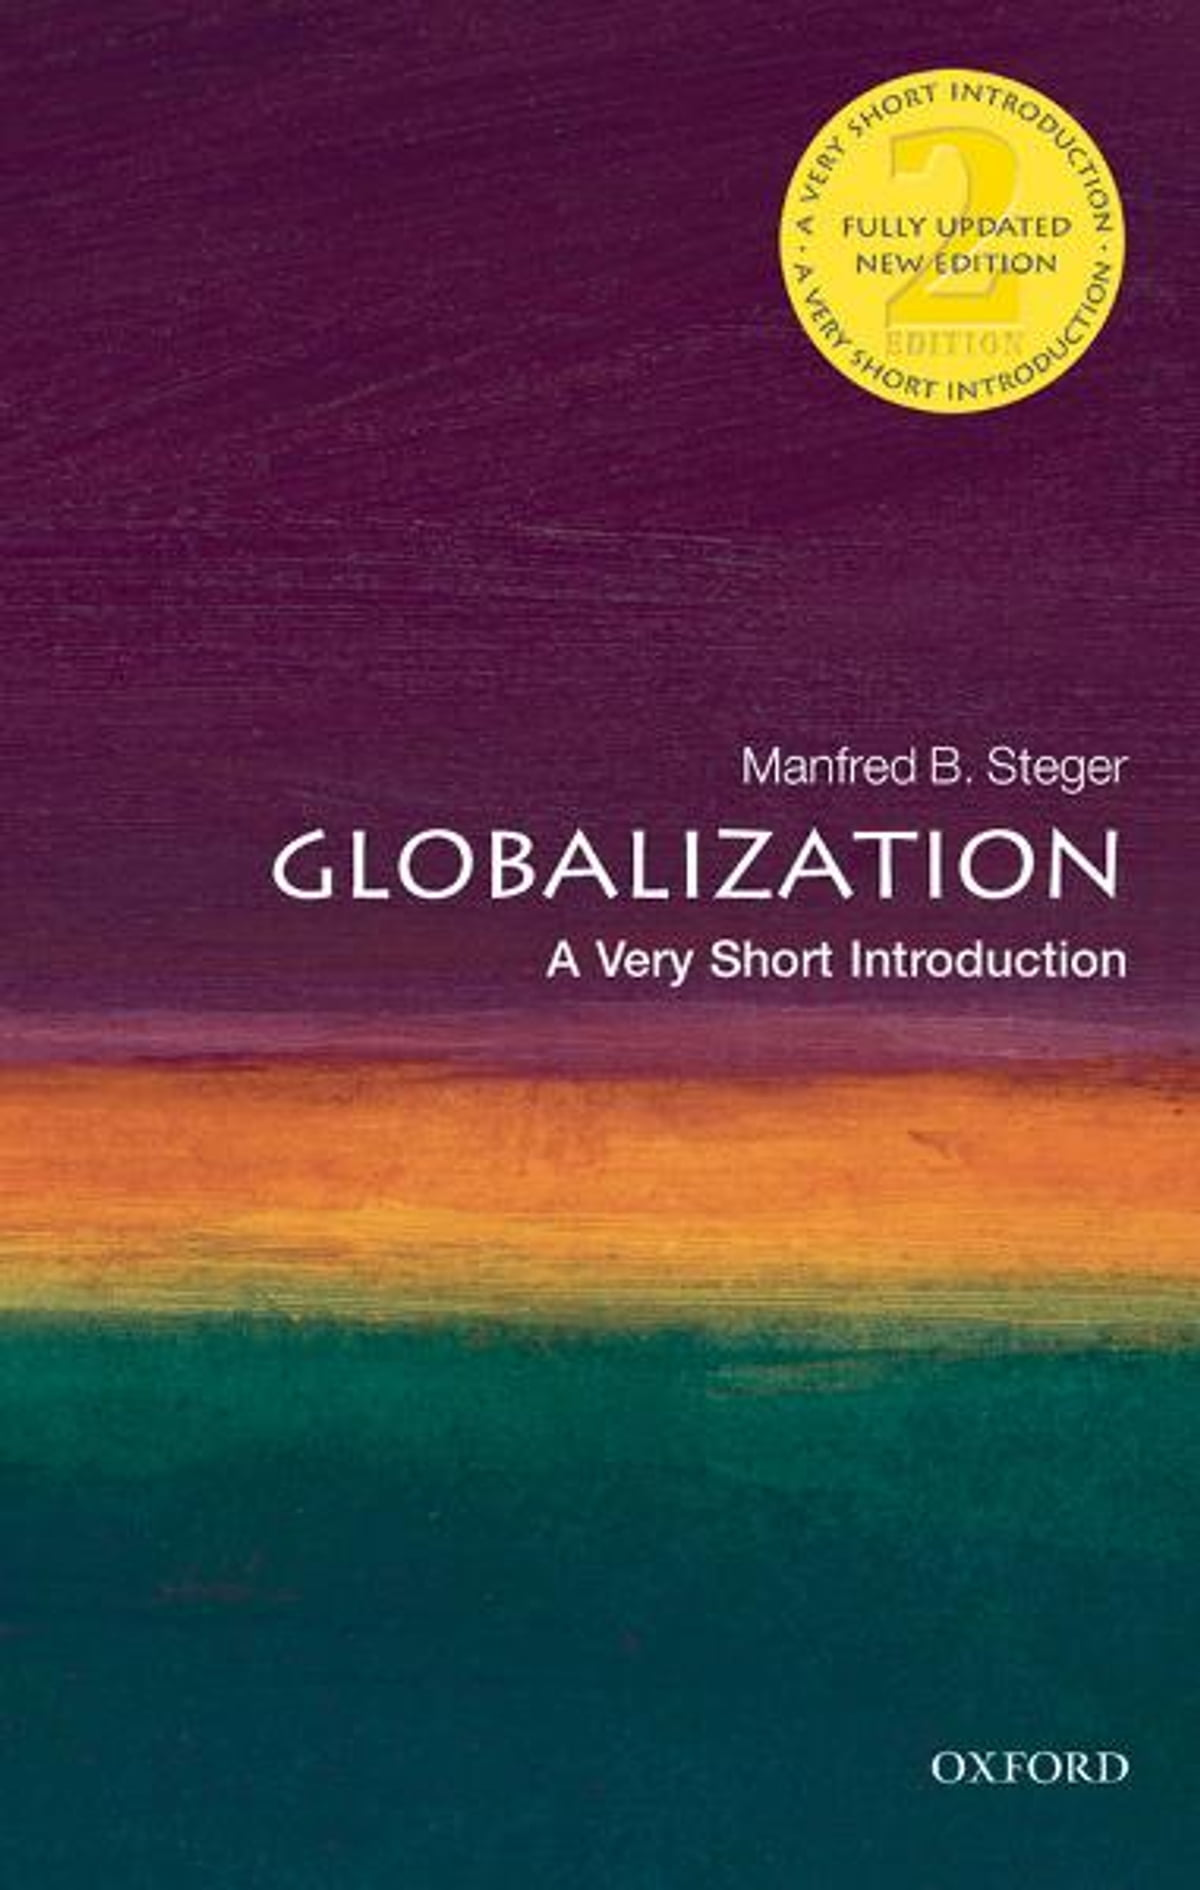 Download Globalization a very short introduction ebook